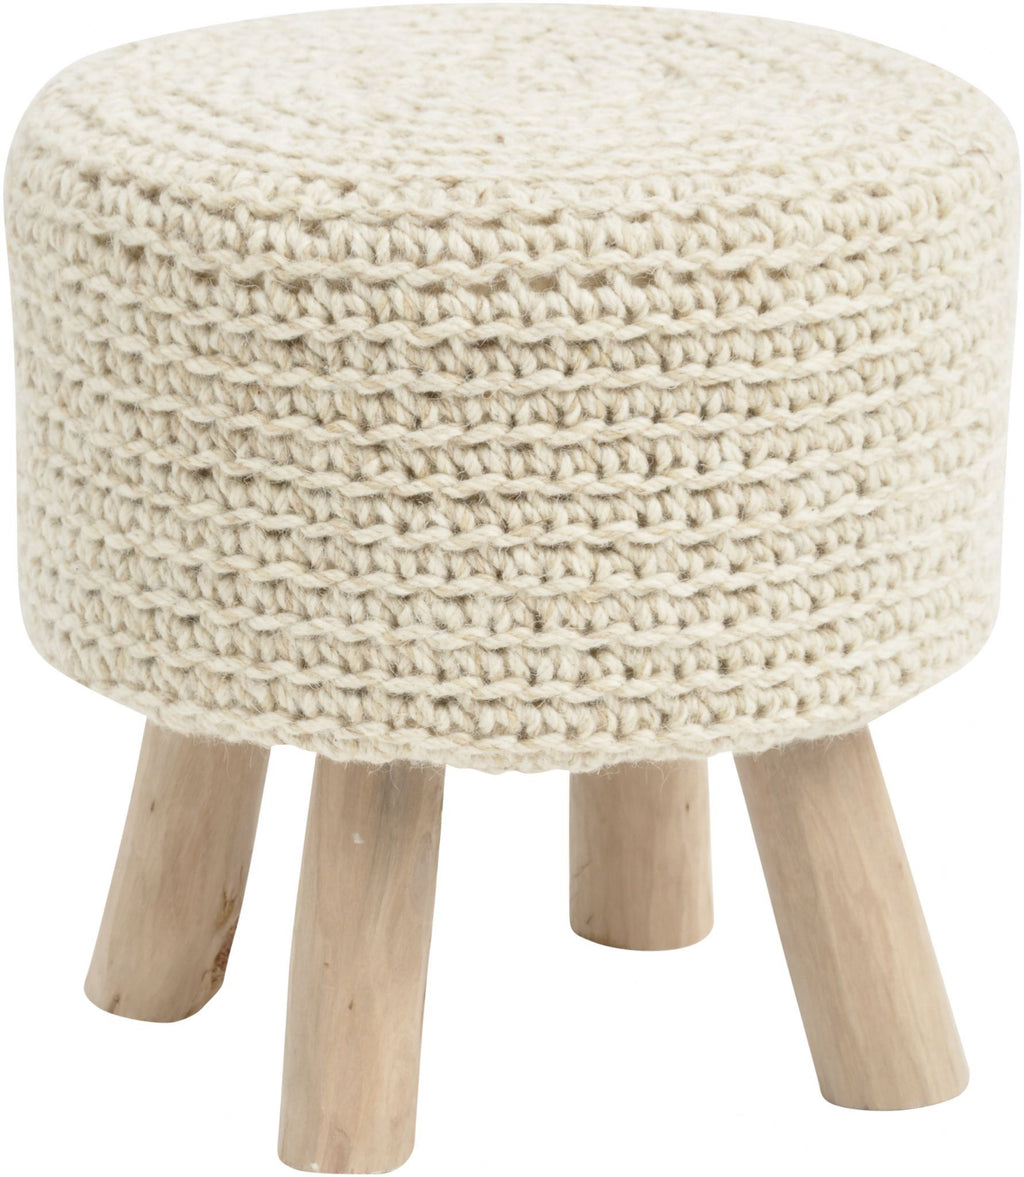 NOMAD KNITTED NATURAL STOOL